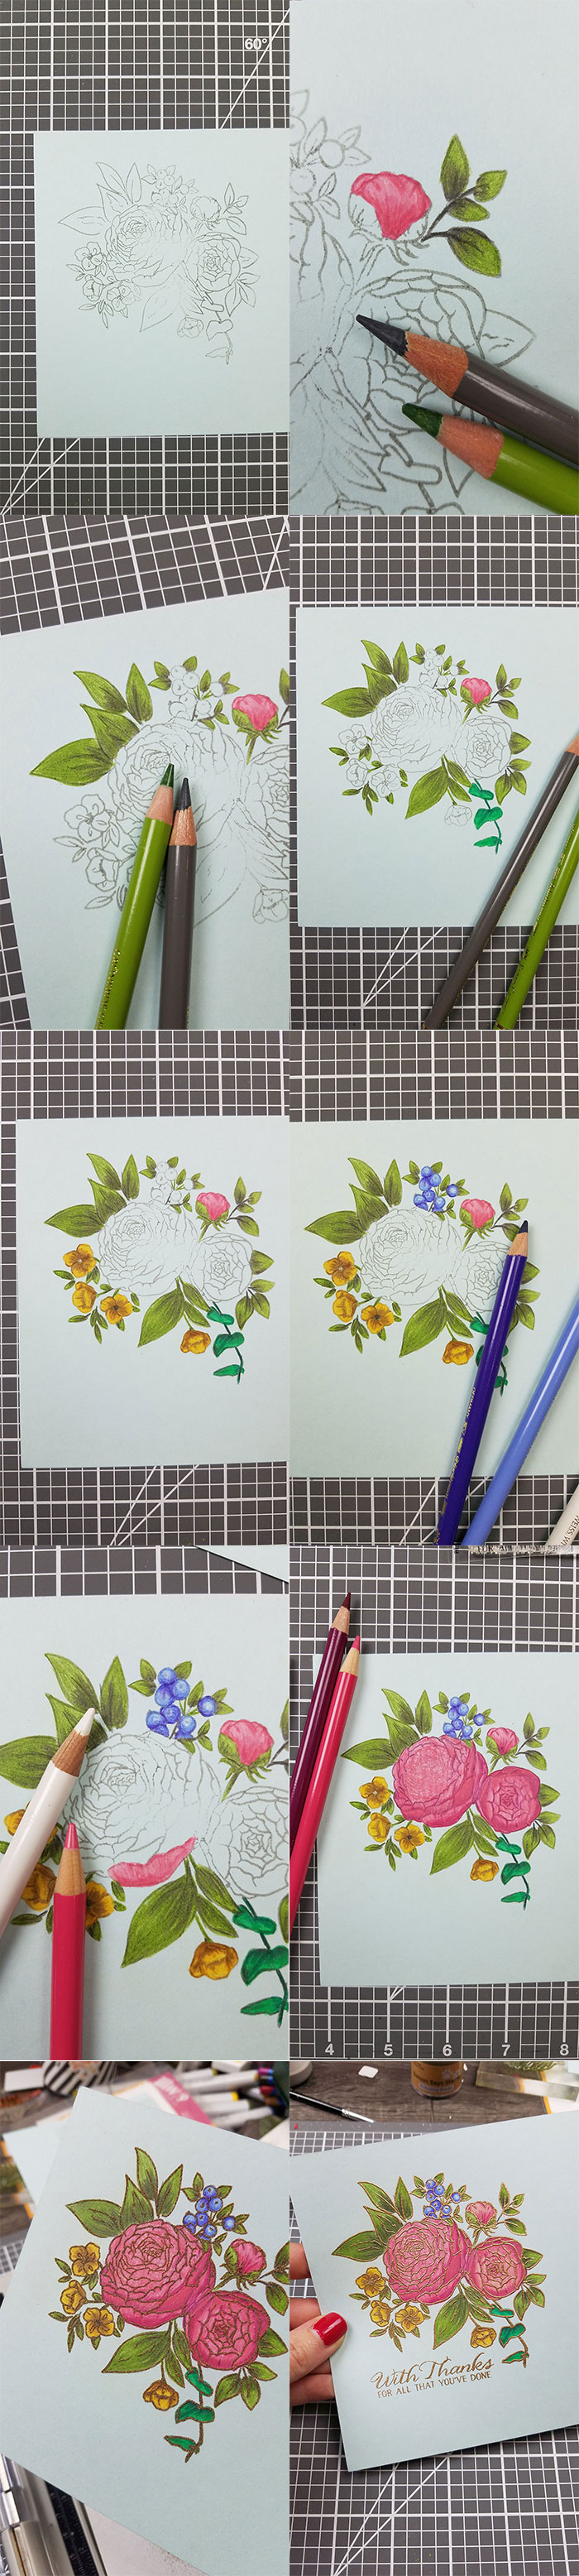 WPlus9 | Pencil Colored Ranunculus Bouquet Thank You Card #yanasmakula #pencilcoloring #wplus9